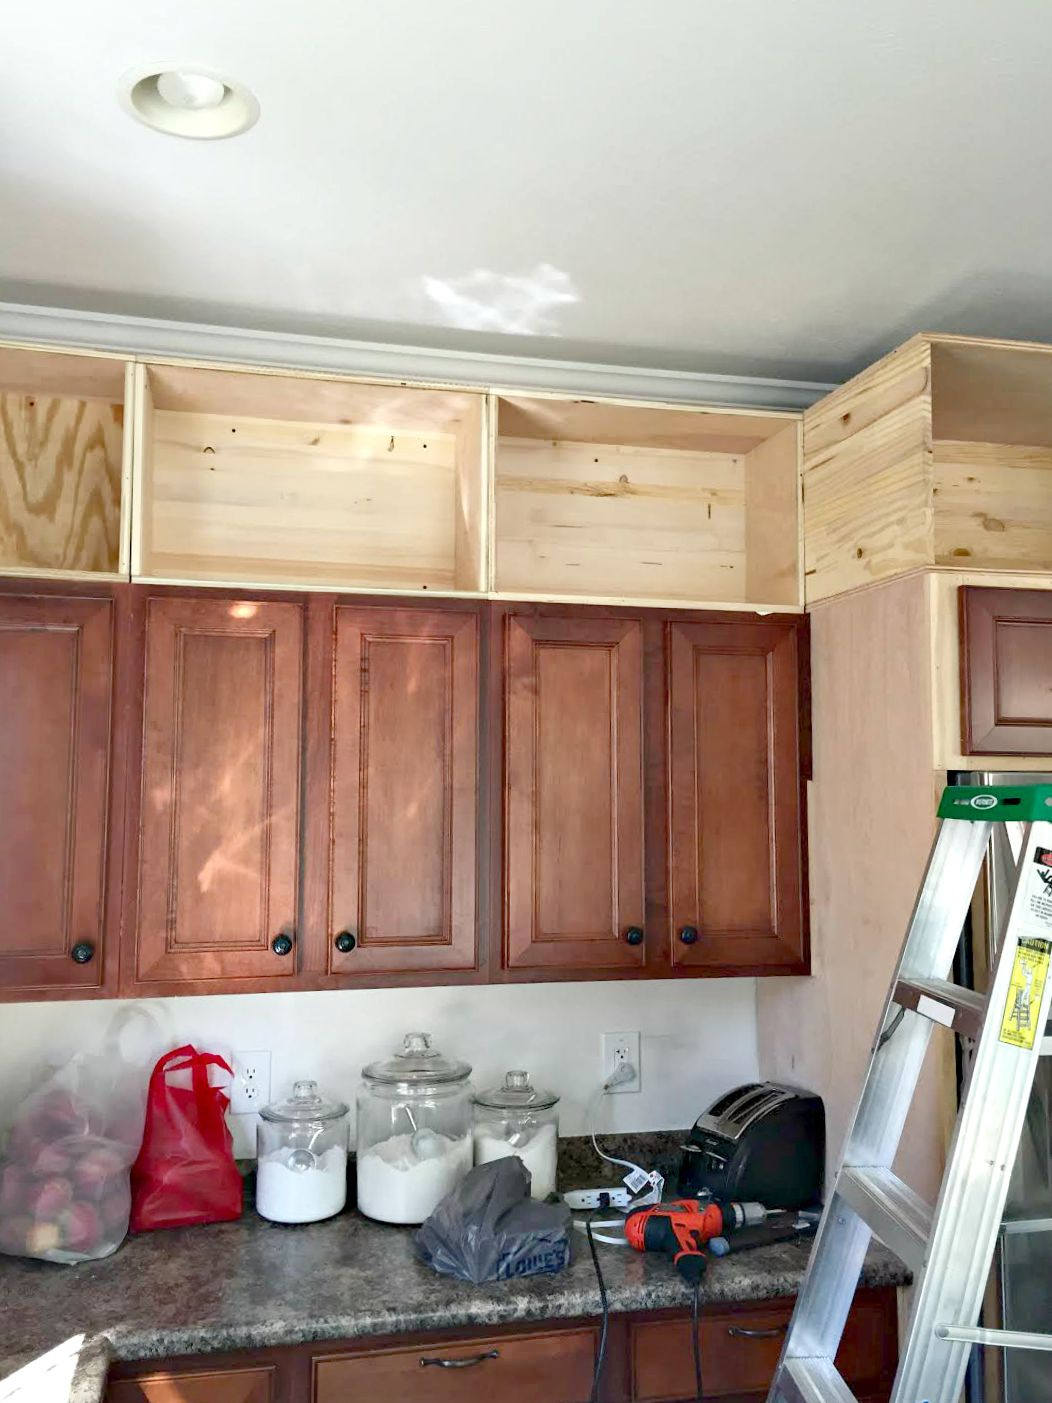 DIY extending cabinets to ceiling